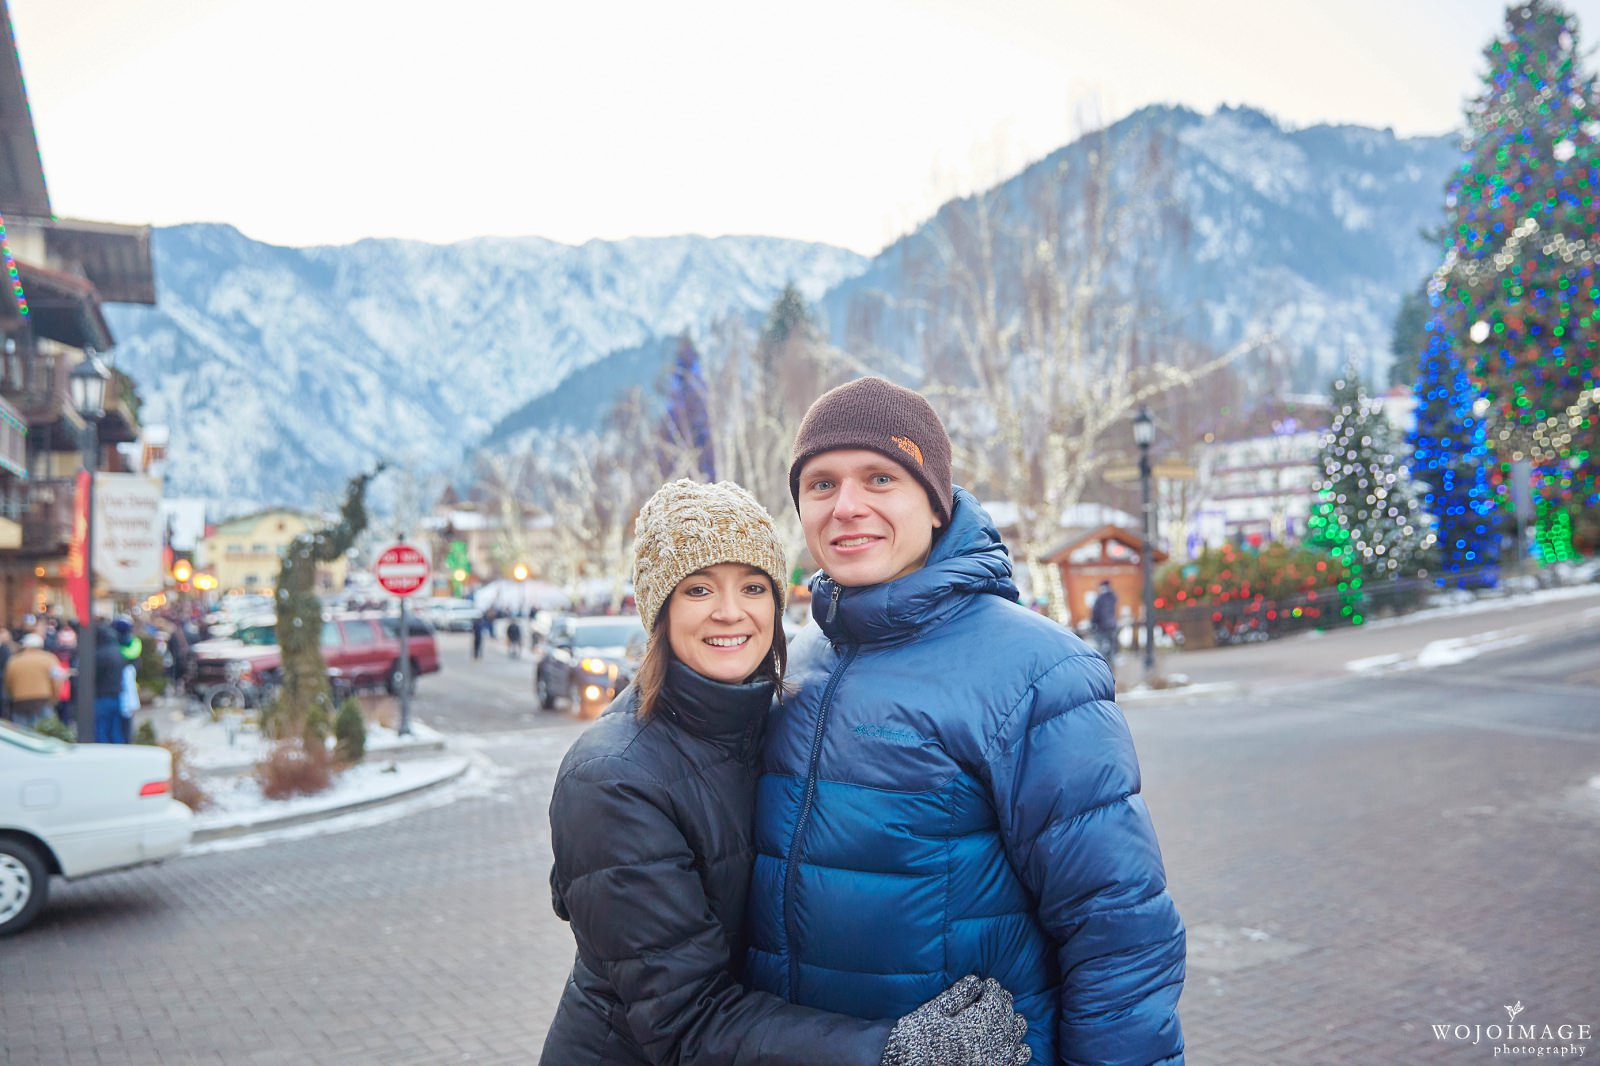 Visiting Leavenworth